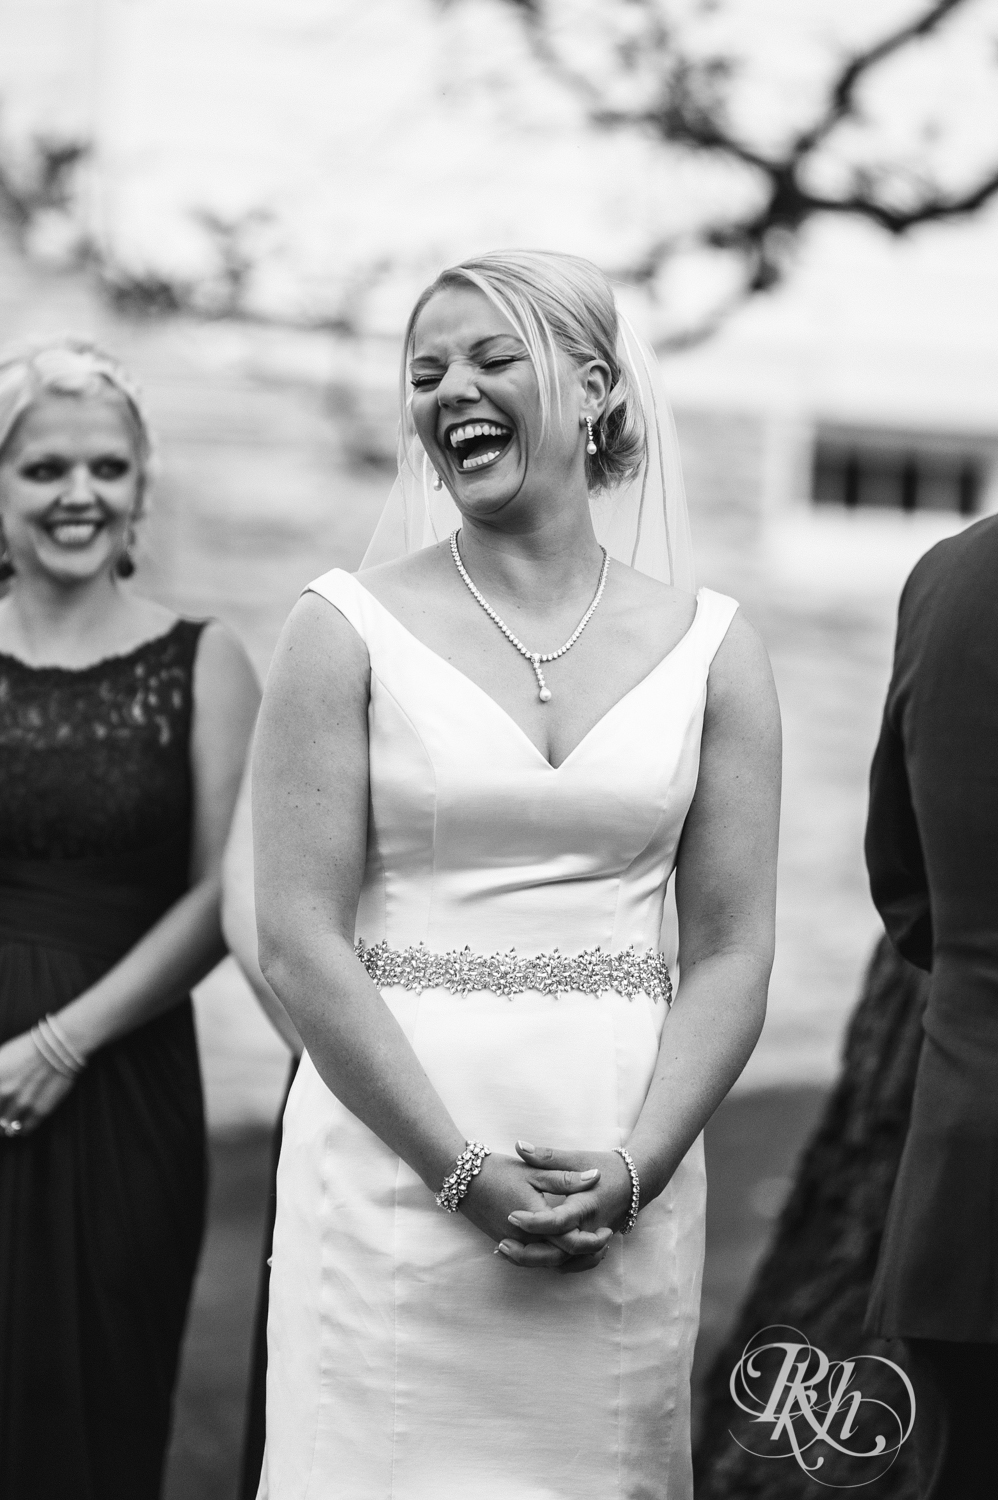 Amanda & Luke - Minnesota Wedding Photography - Mayowood Stone Barn - Rochester - RKH Images - Blog (48 of 67).jpg